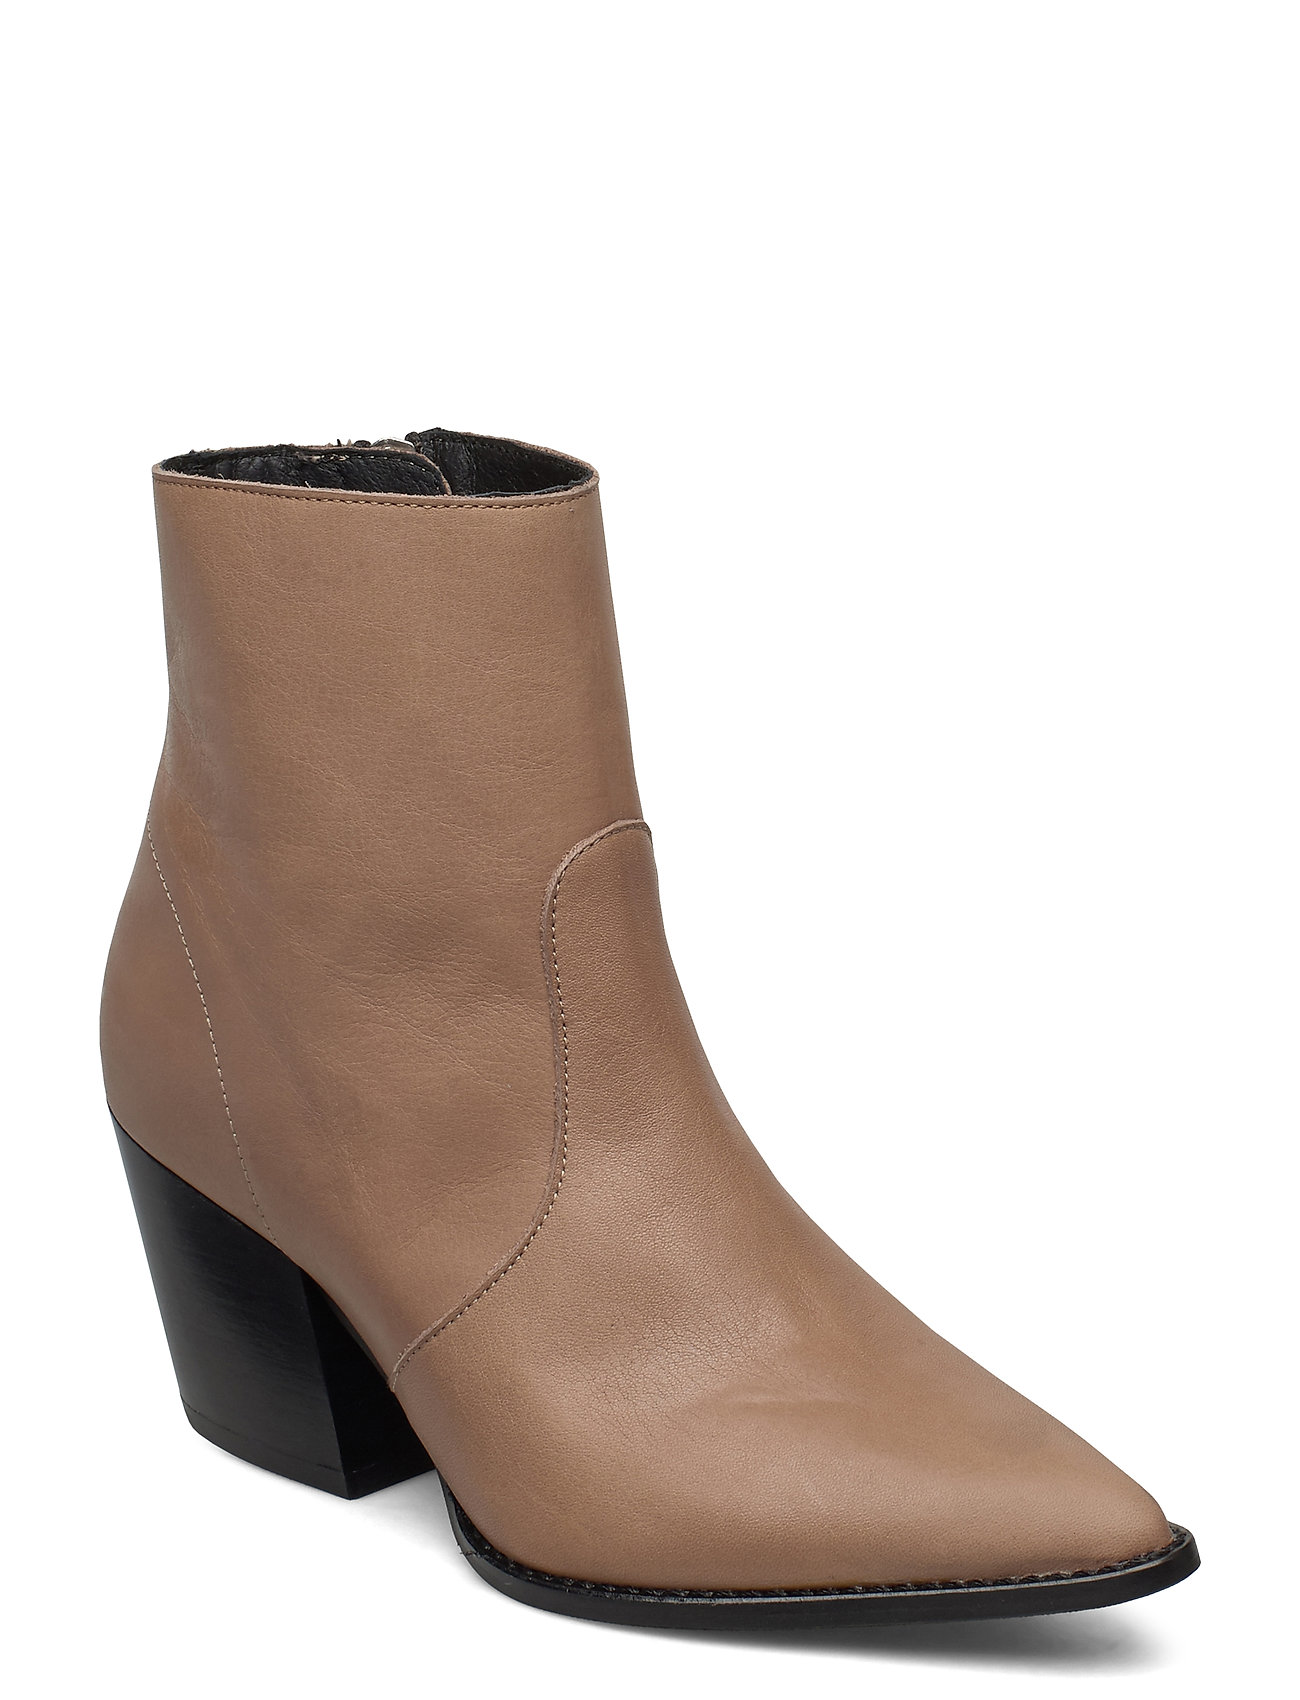 Image of Slfjulie Leather Boot B Shoes Boots Ankle Boots Ankle Boot - Heel Brun Selected Femme (3430127199)